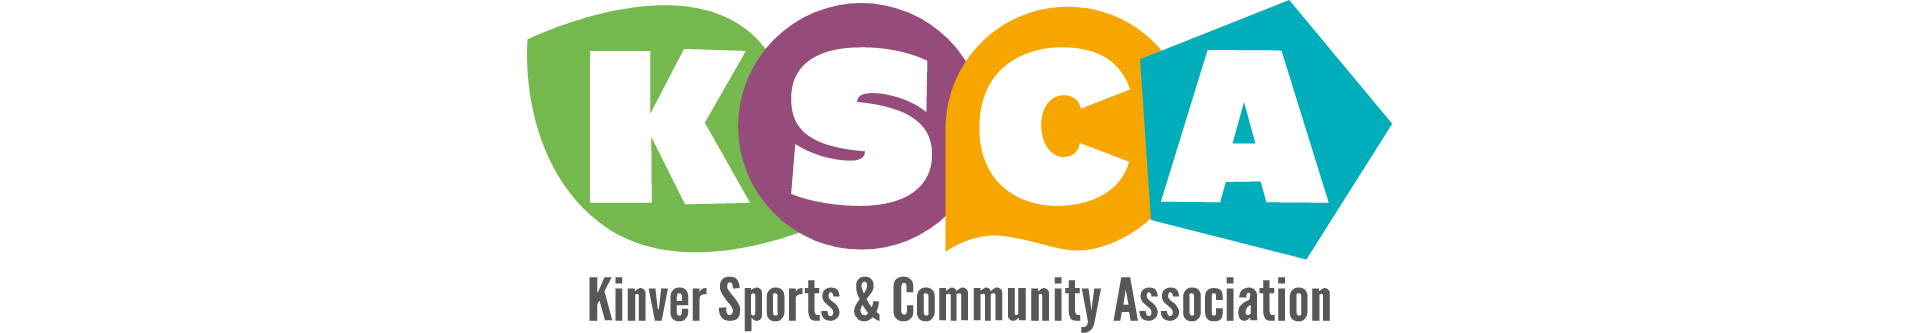 Kinver Sports And Community Association Logo Design By Louise Russell Design